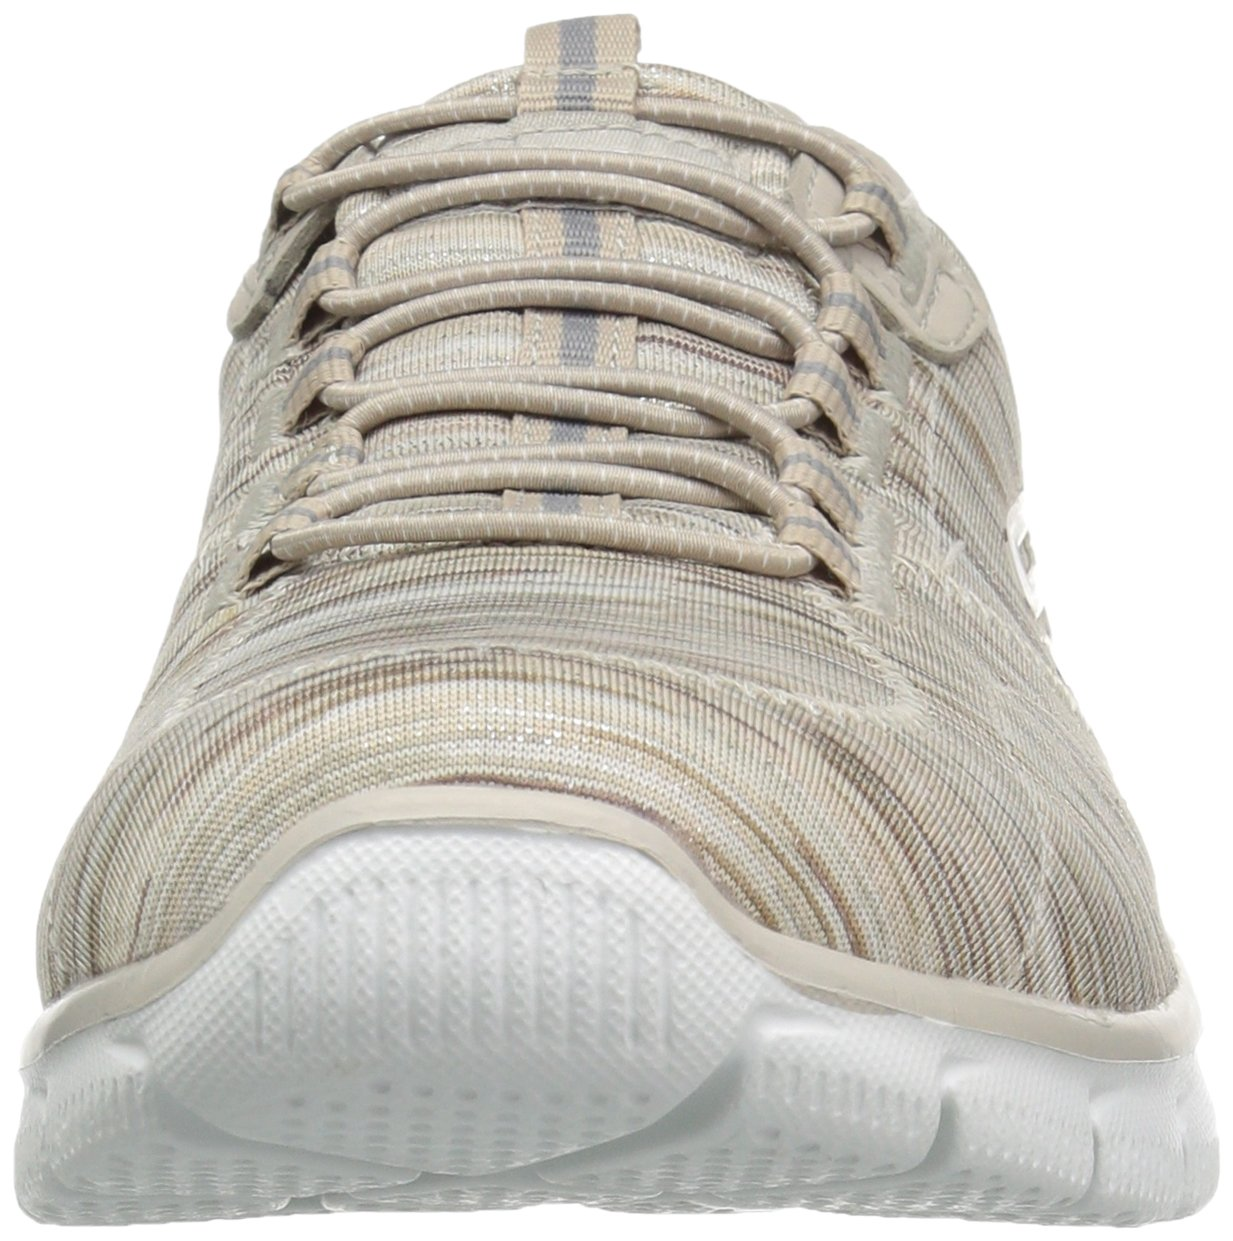 Skechers Women's Empire Game On Memory Foam Sneakers Shoes, Taupe, 6 B(M) US by Skechers (Image #4)